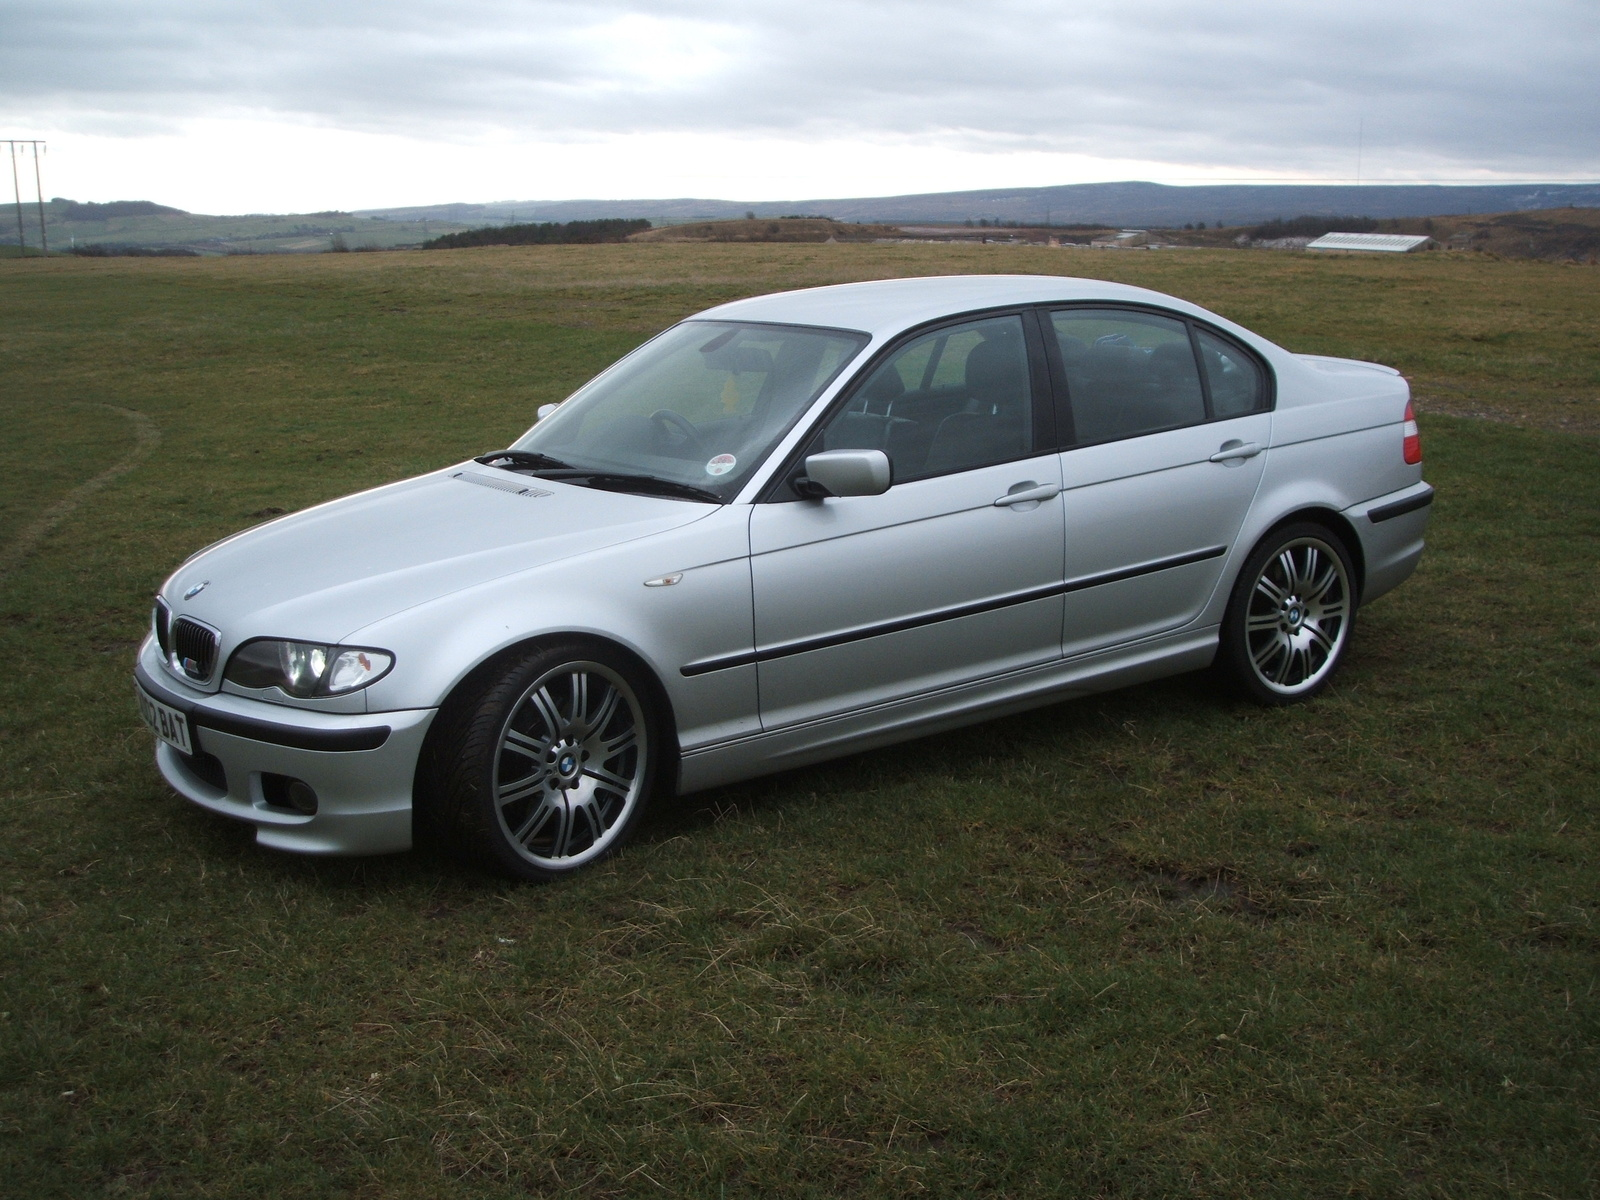 BMW 3 series 328i 2002 photo - 6